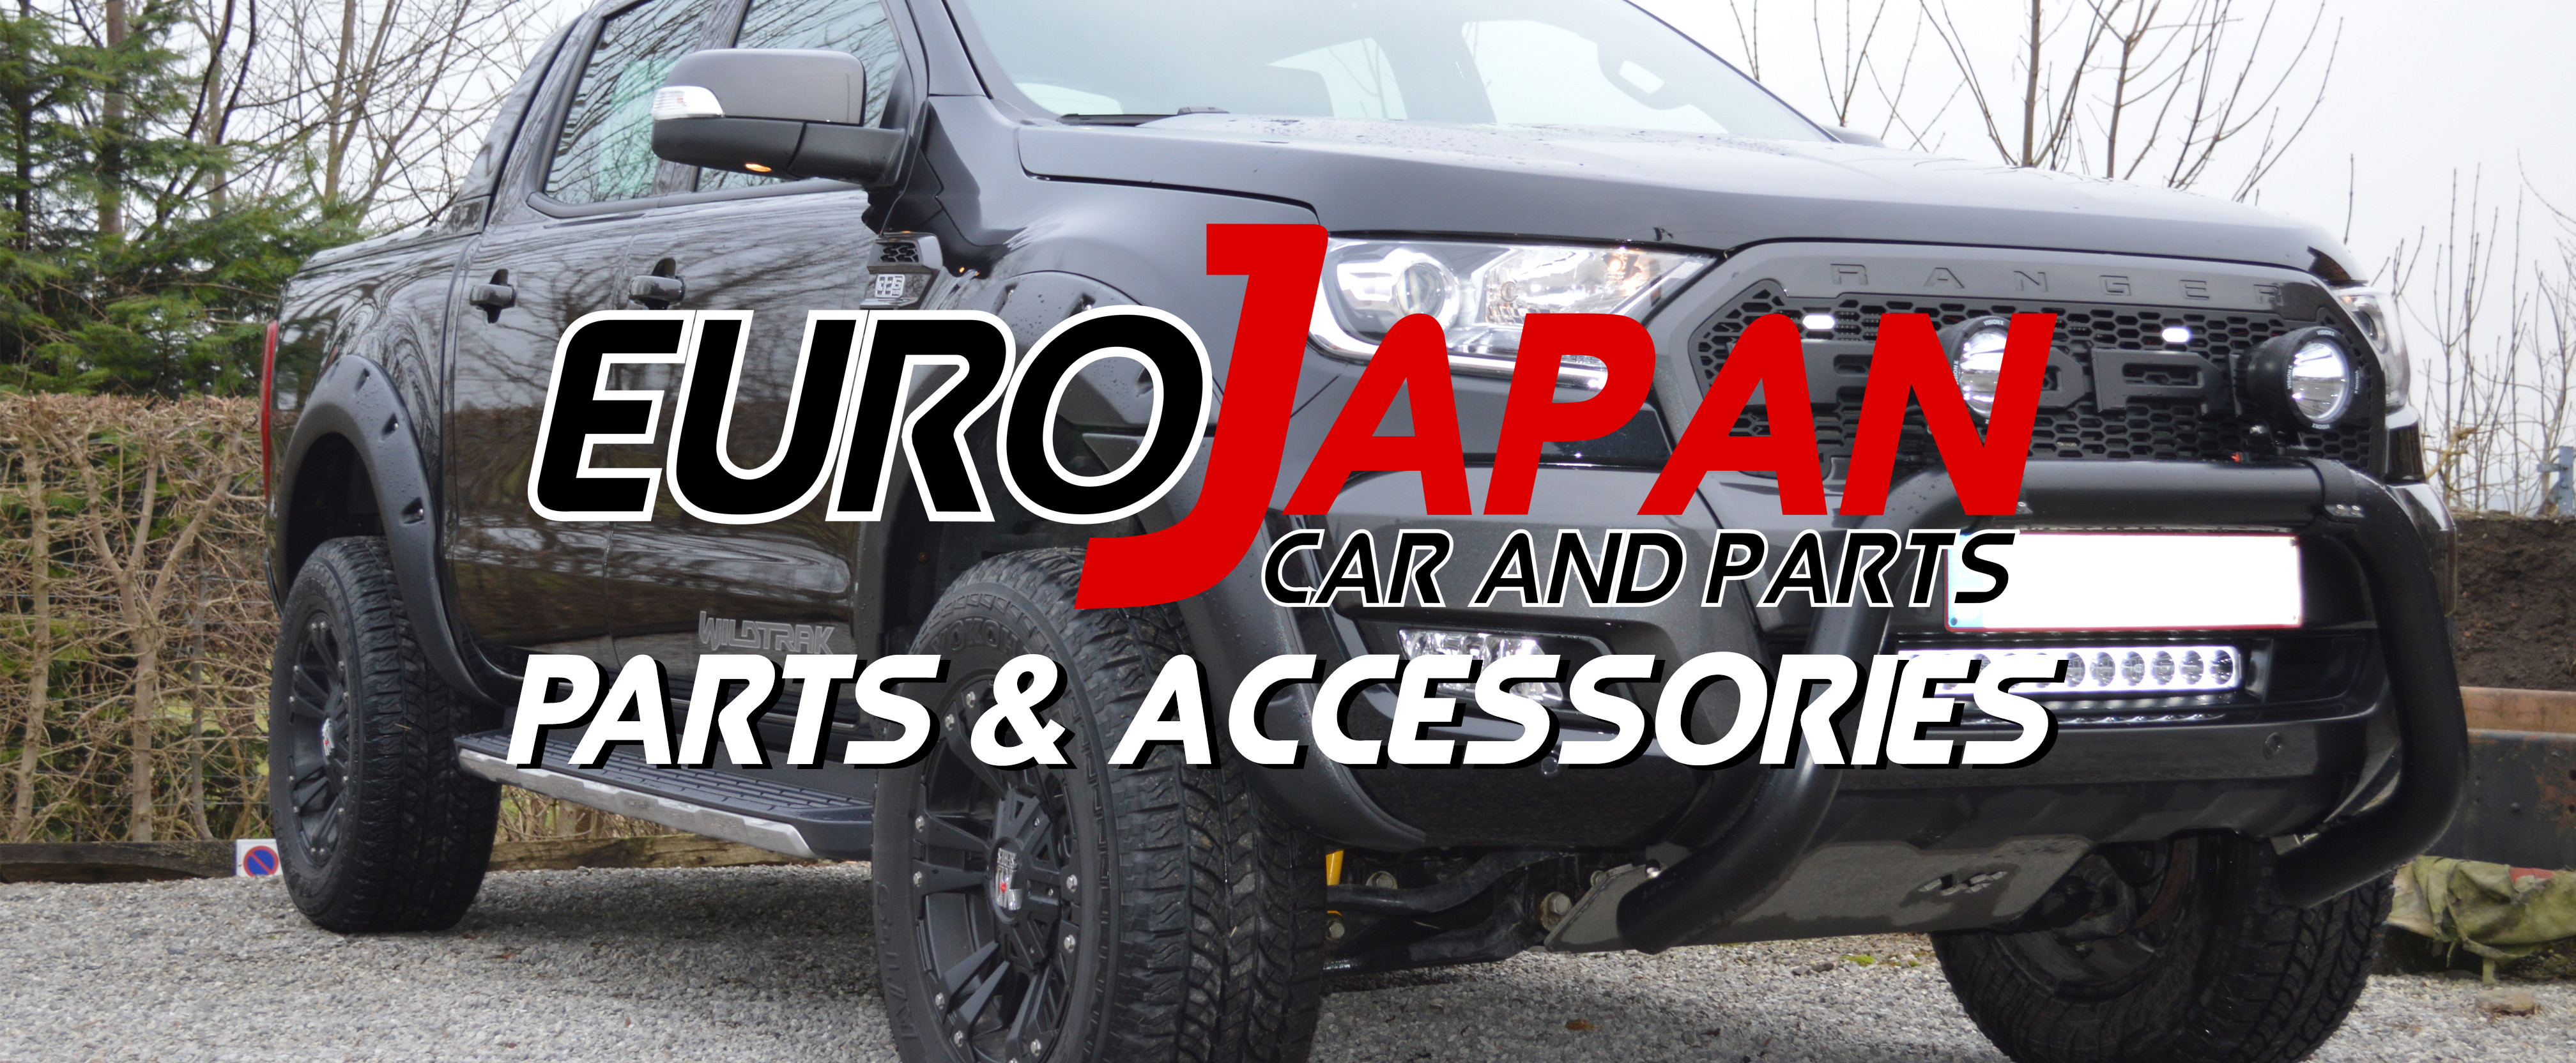 Accessoires Pick up Ford / Eurojapan